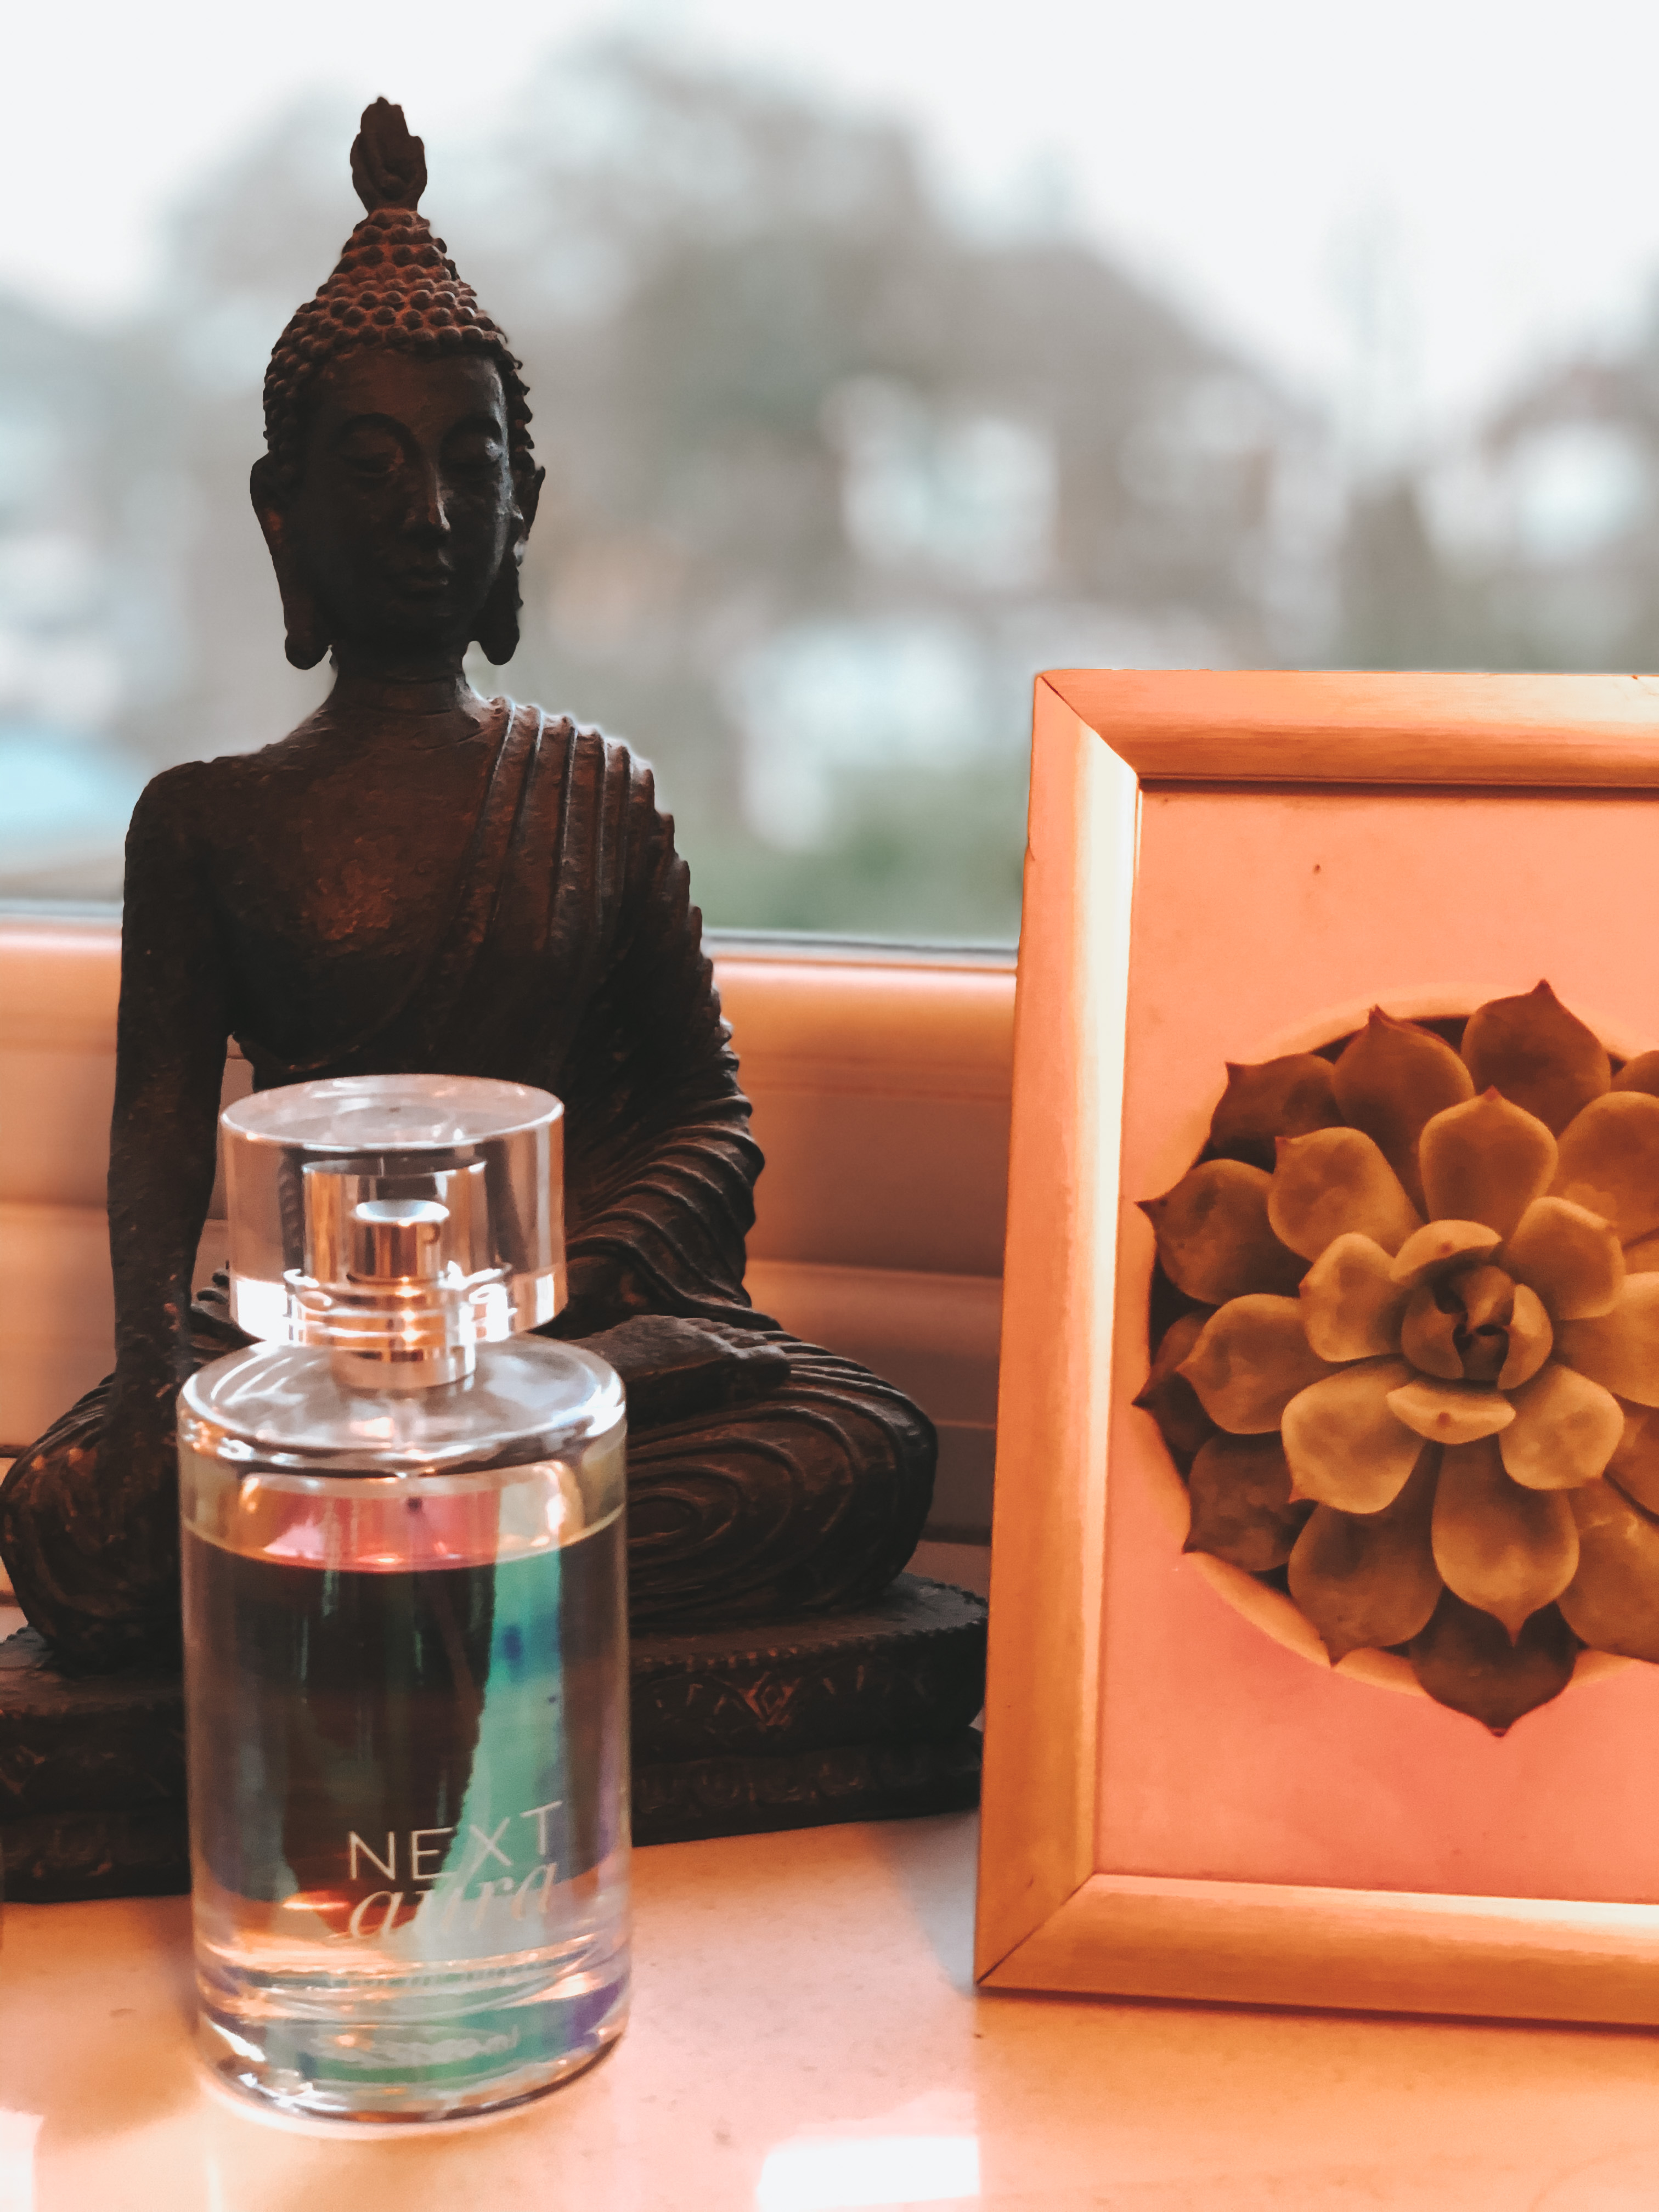 Next Aura perfume on window sill with buddha statue and plant picture frame